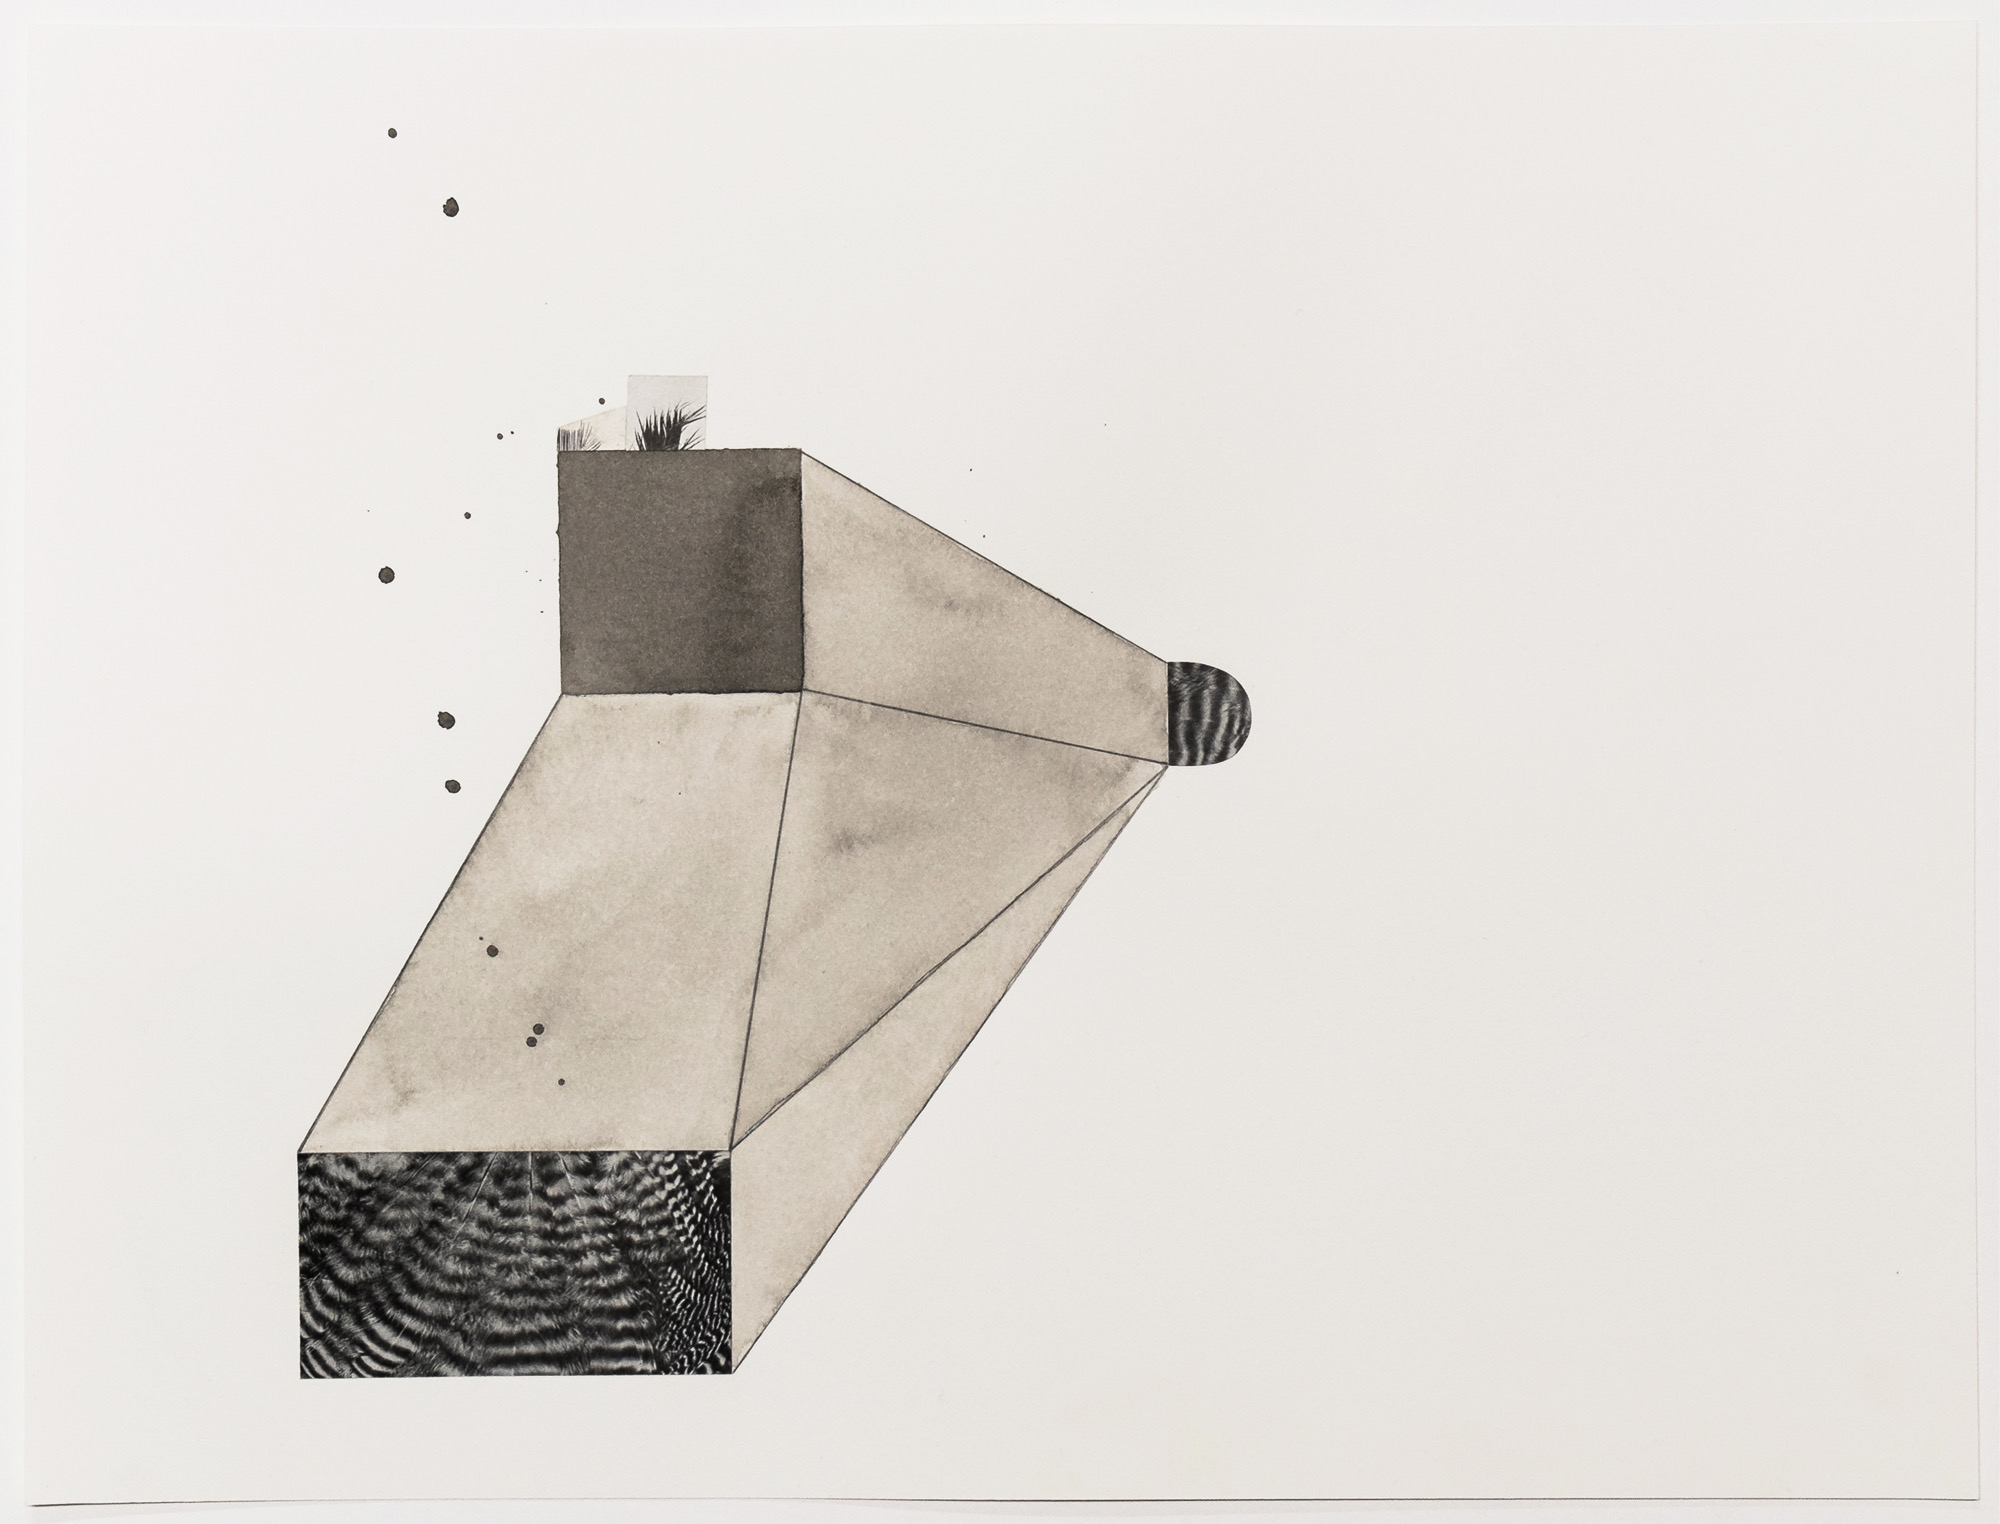 Untitled (no. 13), 2013, ink, collage on paper, 12 x 16""